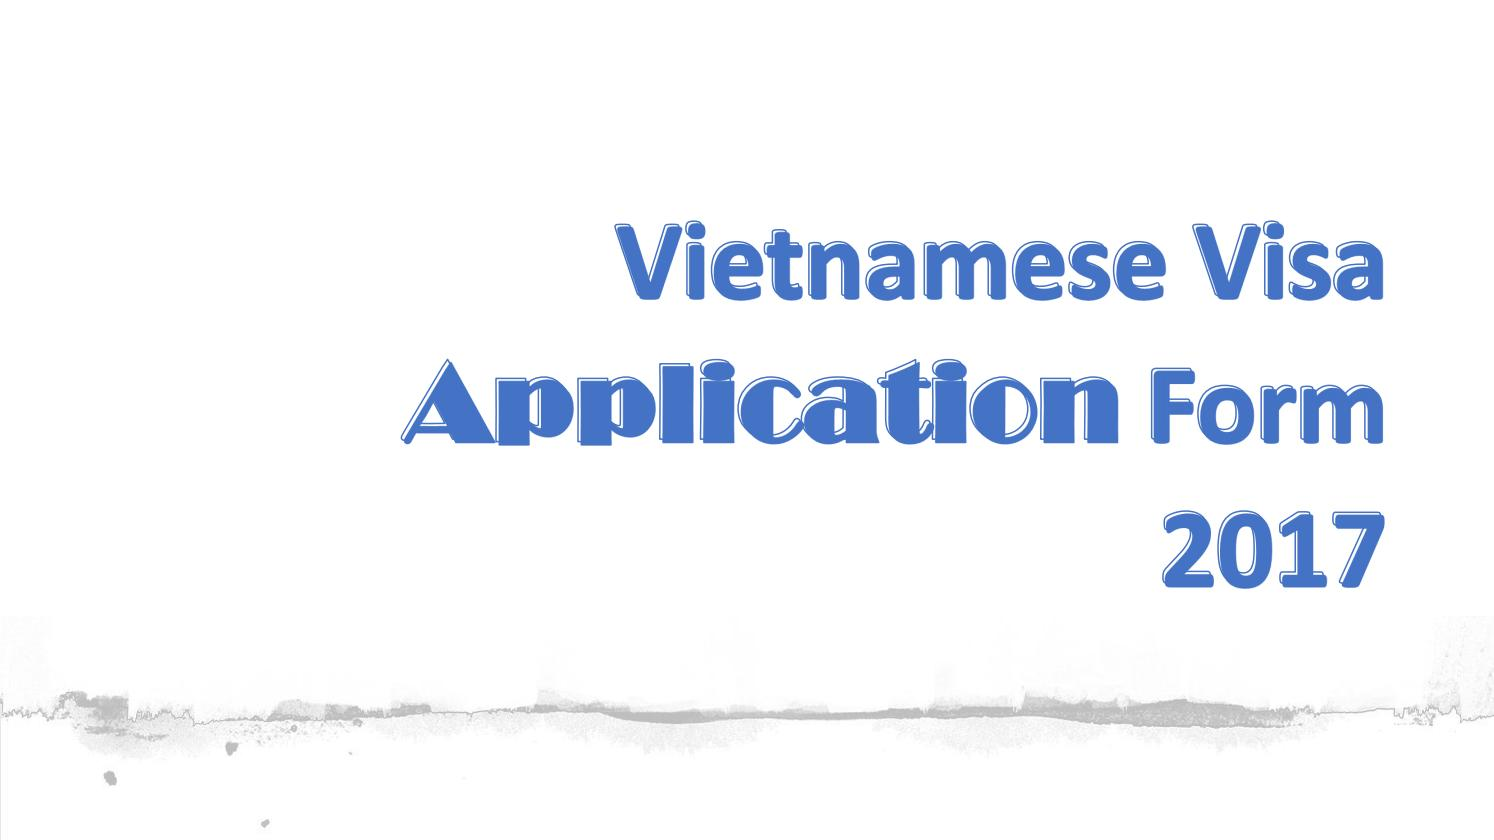 Vietnamese Visa Application Form 2017